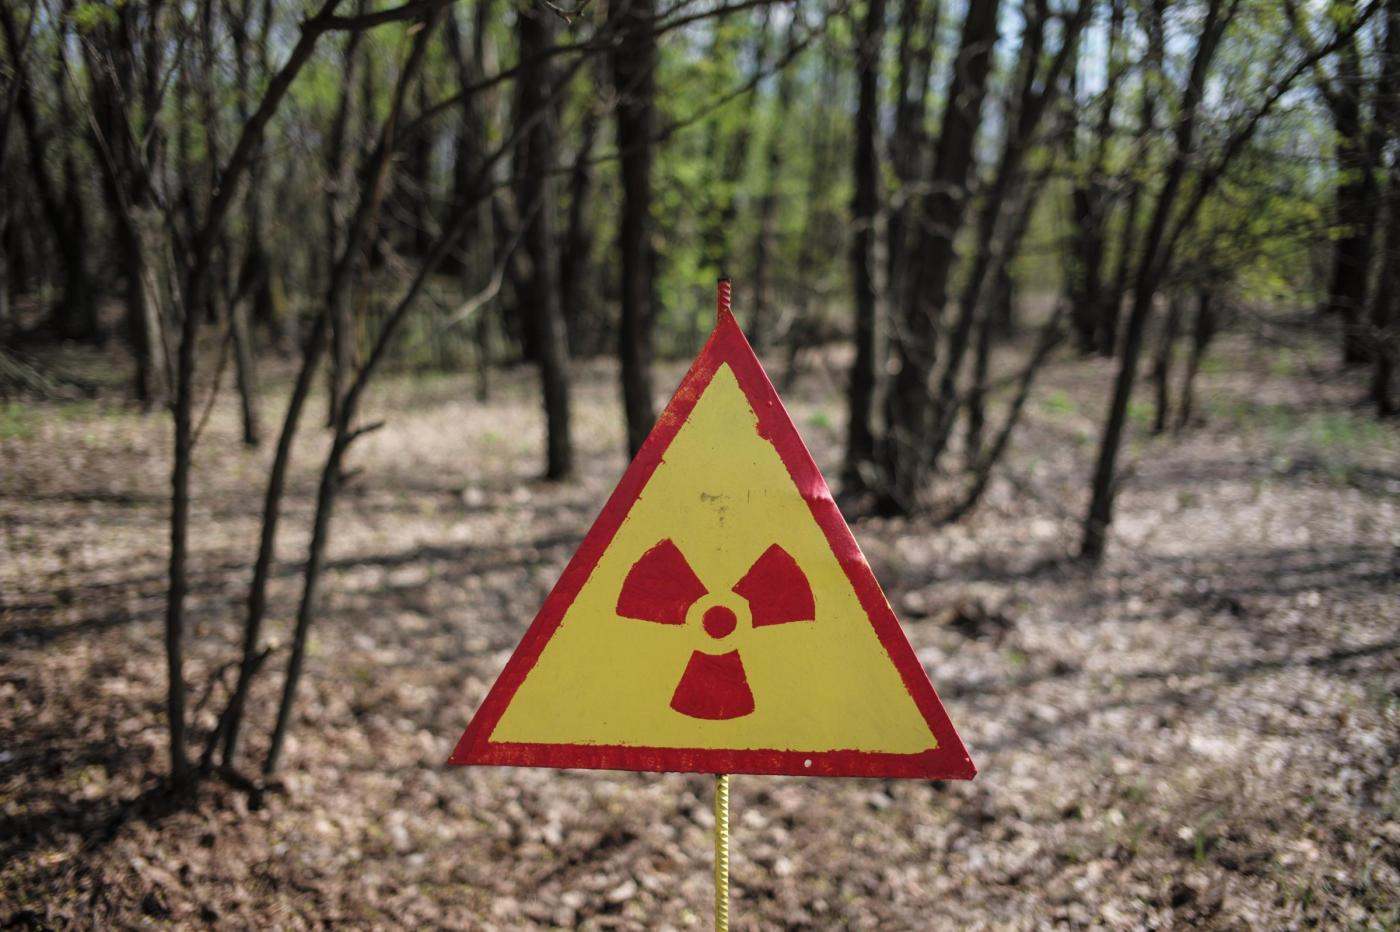 Disastro nucleare a Chernobyl